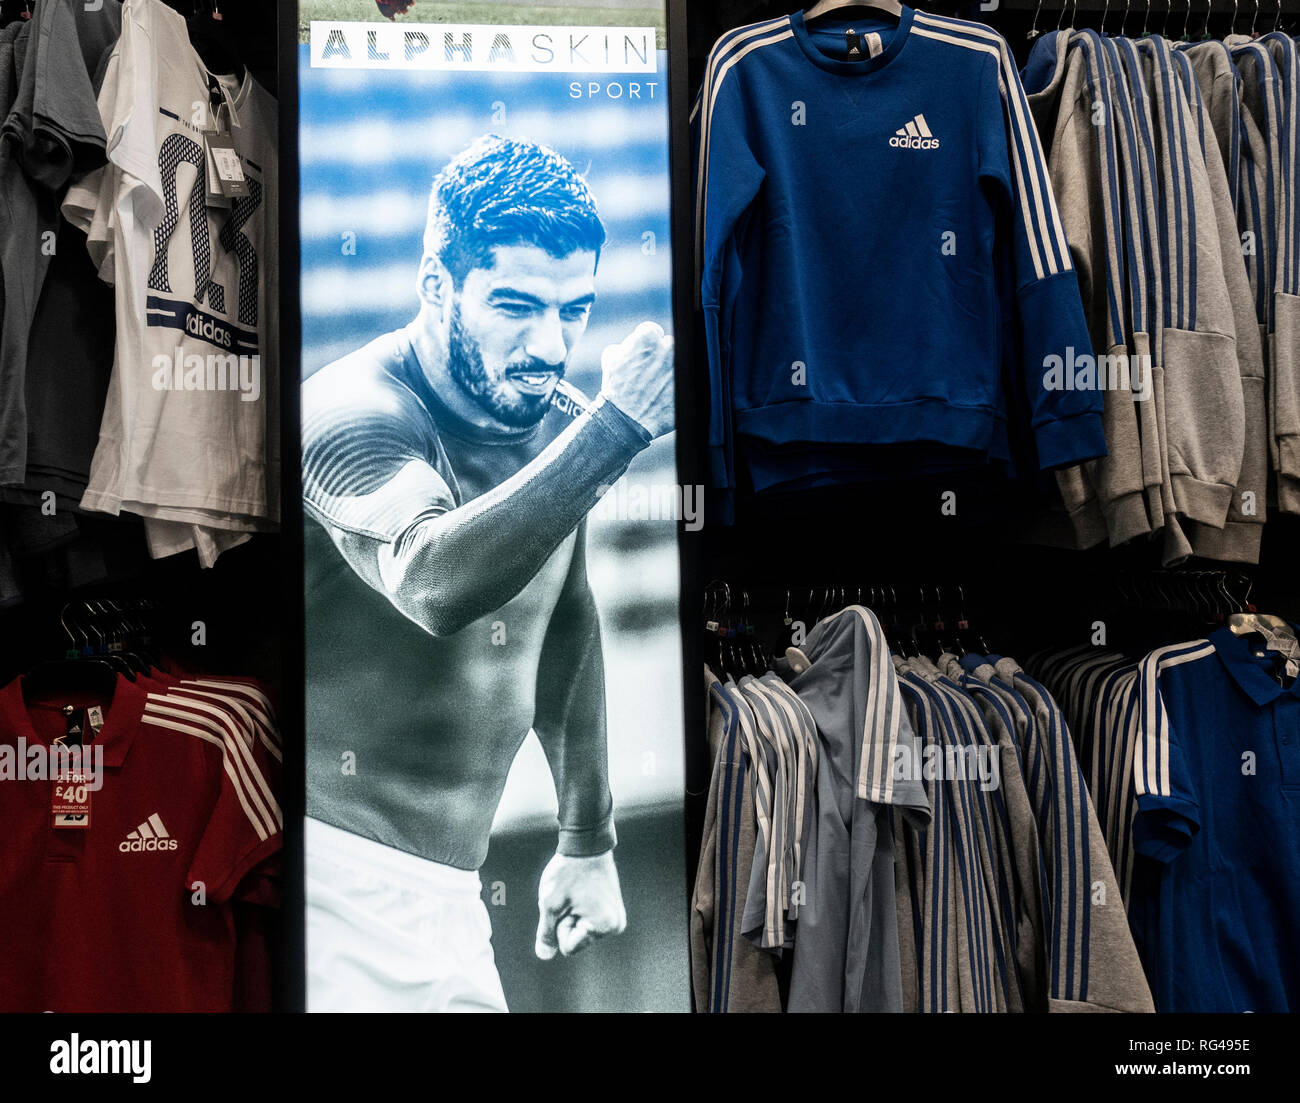 Instore Adidas display featuring footballer Luis Suarez in Sports Direct store. UK - Stock Image